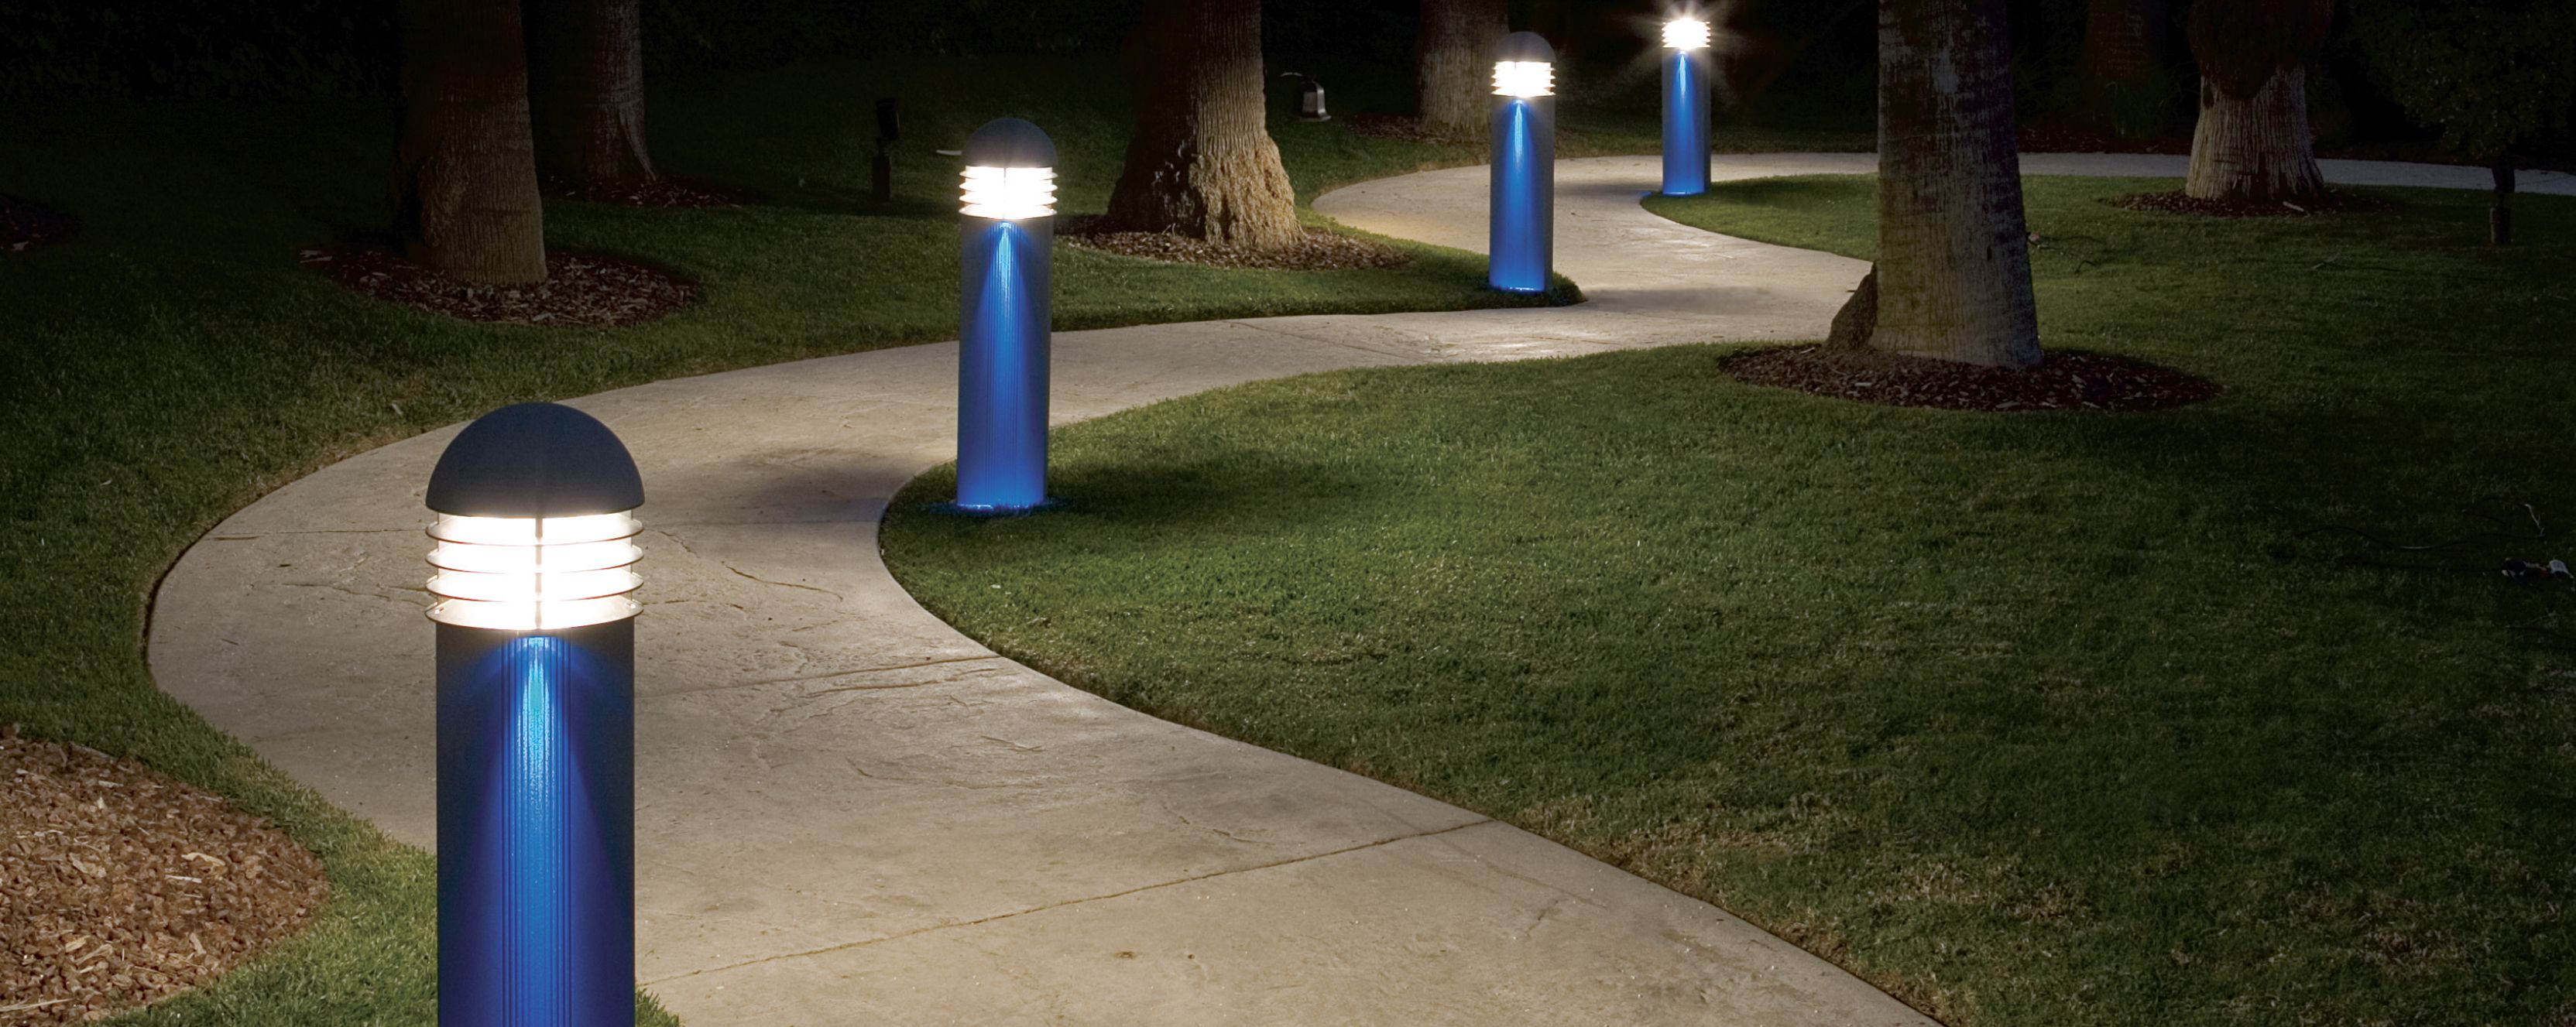 Bollard landing 2 outdoor lighting pinterest outdoor bollard landing 2 mozeypictures